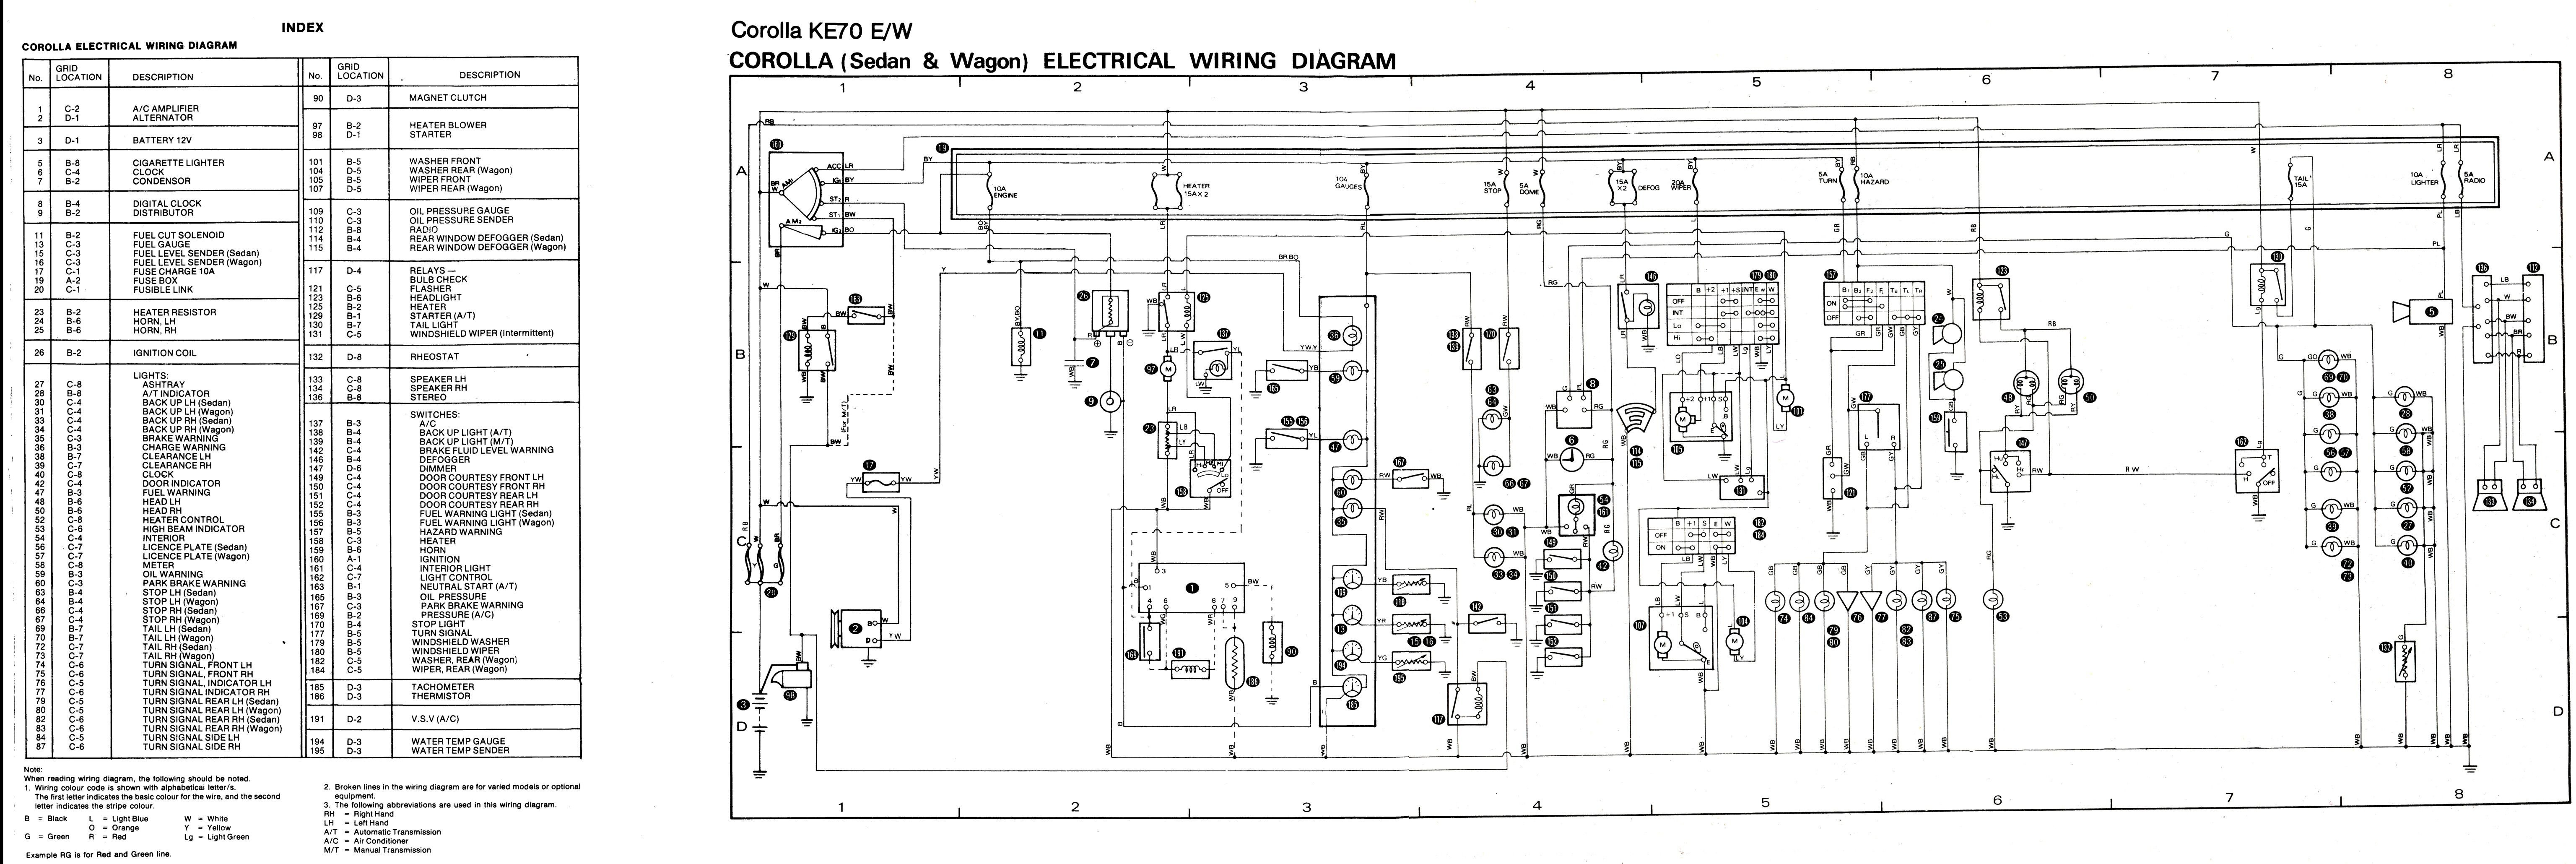 Diagram Toyota Ke70 Wiring Diagram Full Version Hd Quality Wiring Diagram Sitexrolf Festadelluvavagliagli It